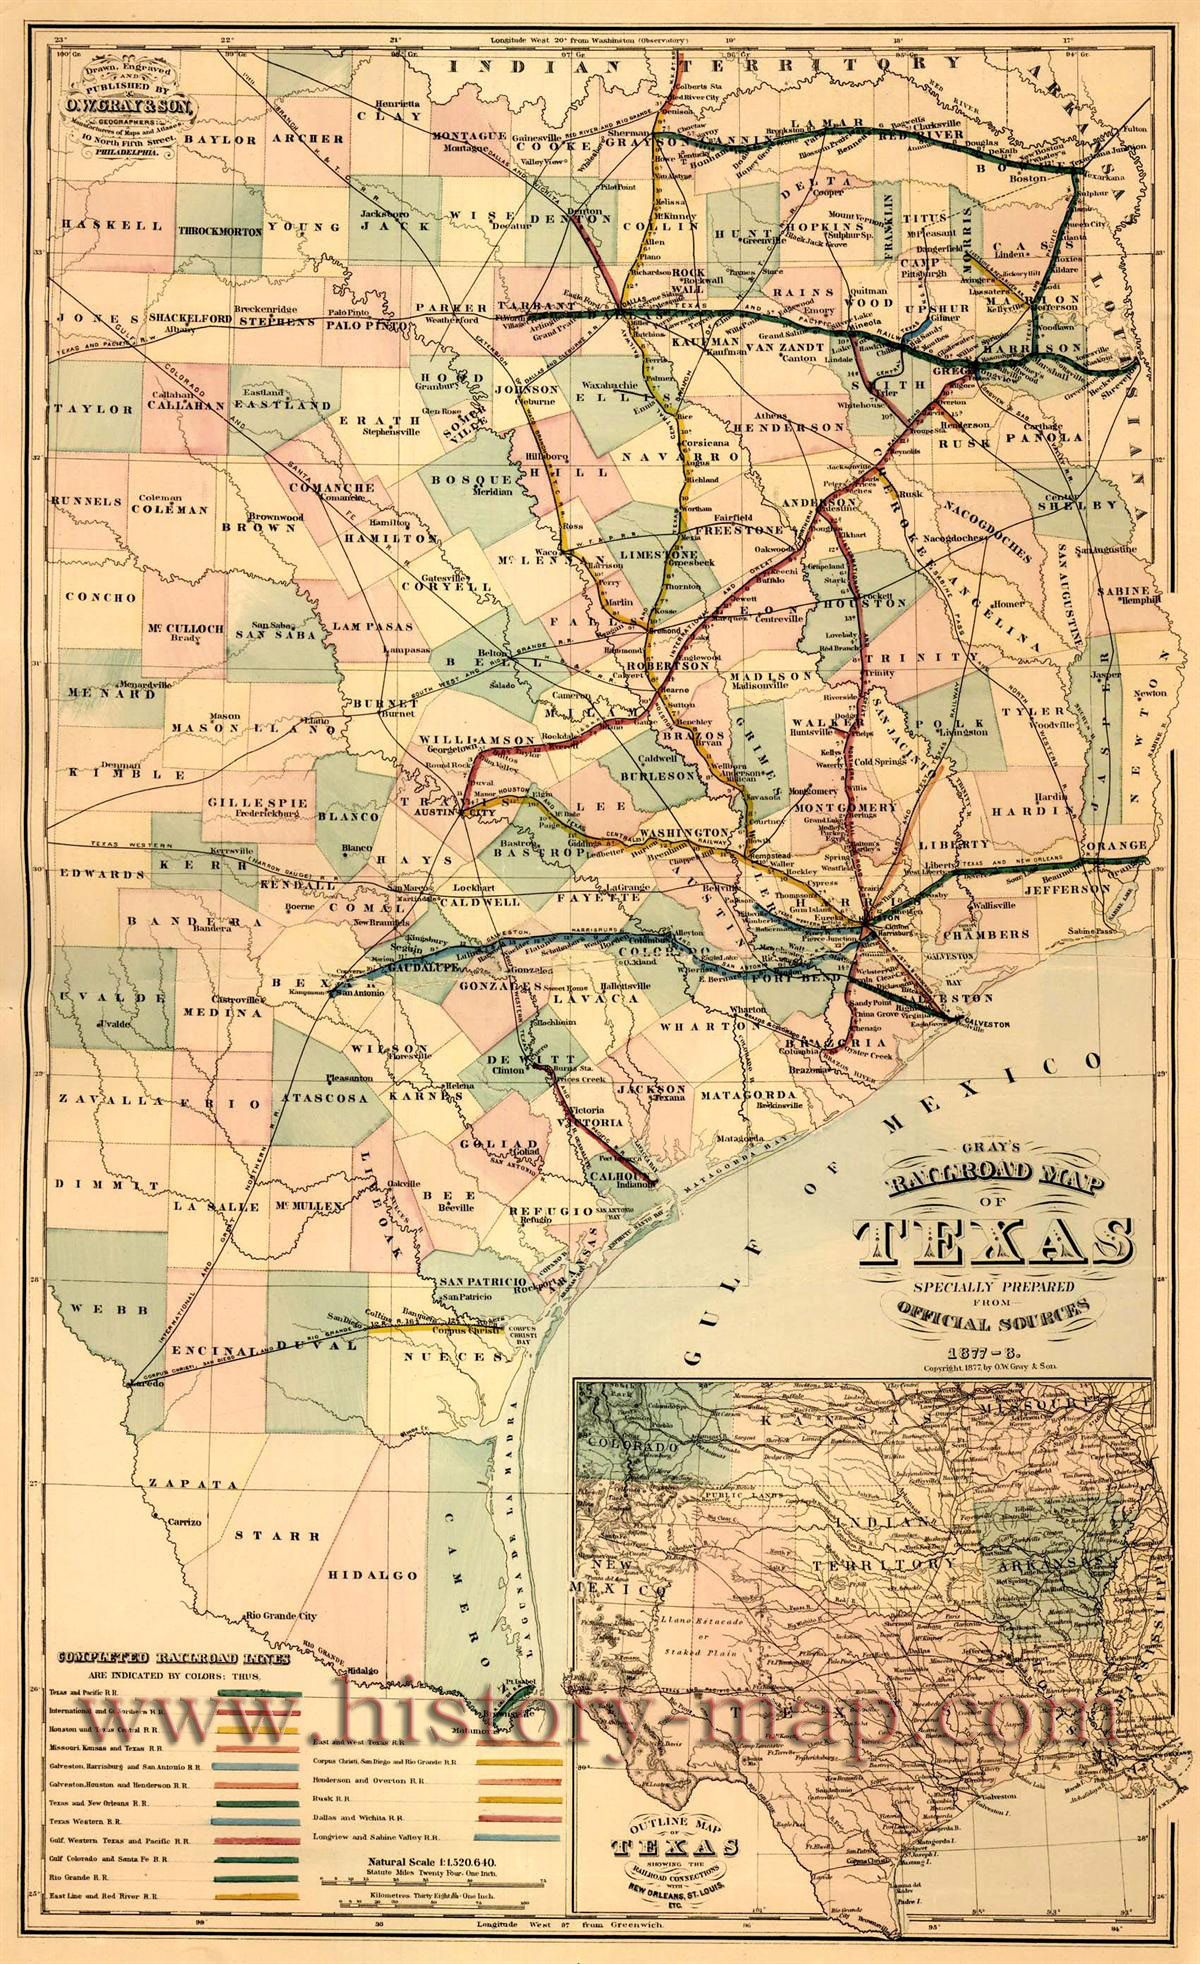 Railroad Map Of Texas.Texas Railroad Map 1877 1878 Rpg Art Western And Deadlands In